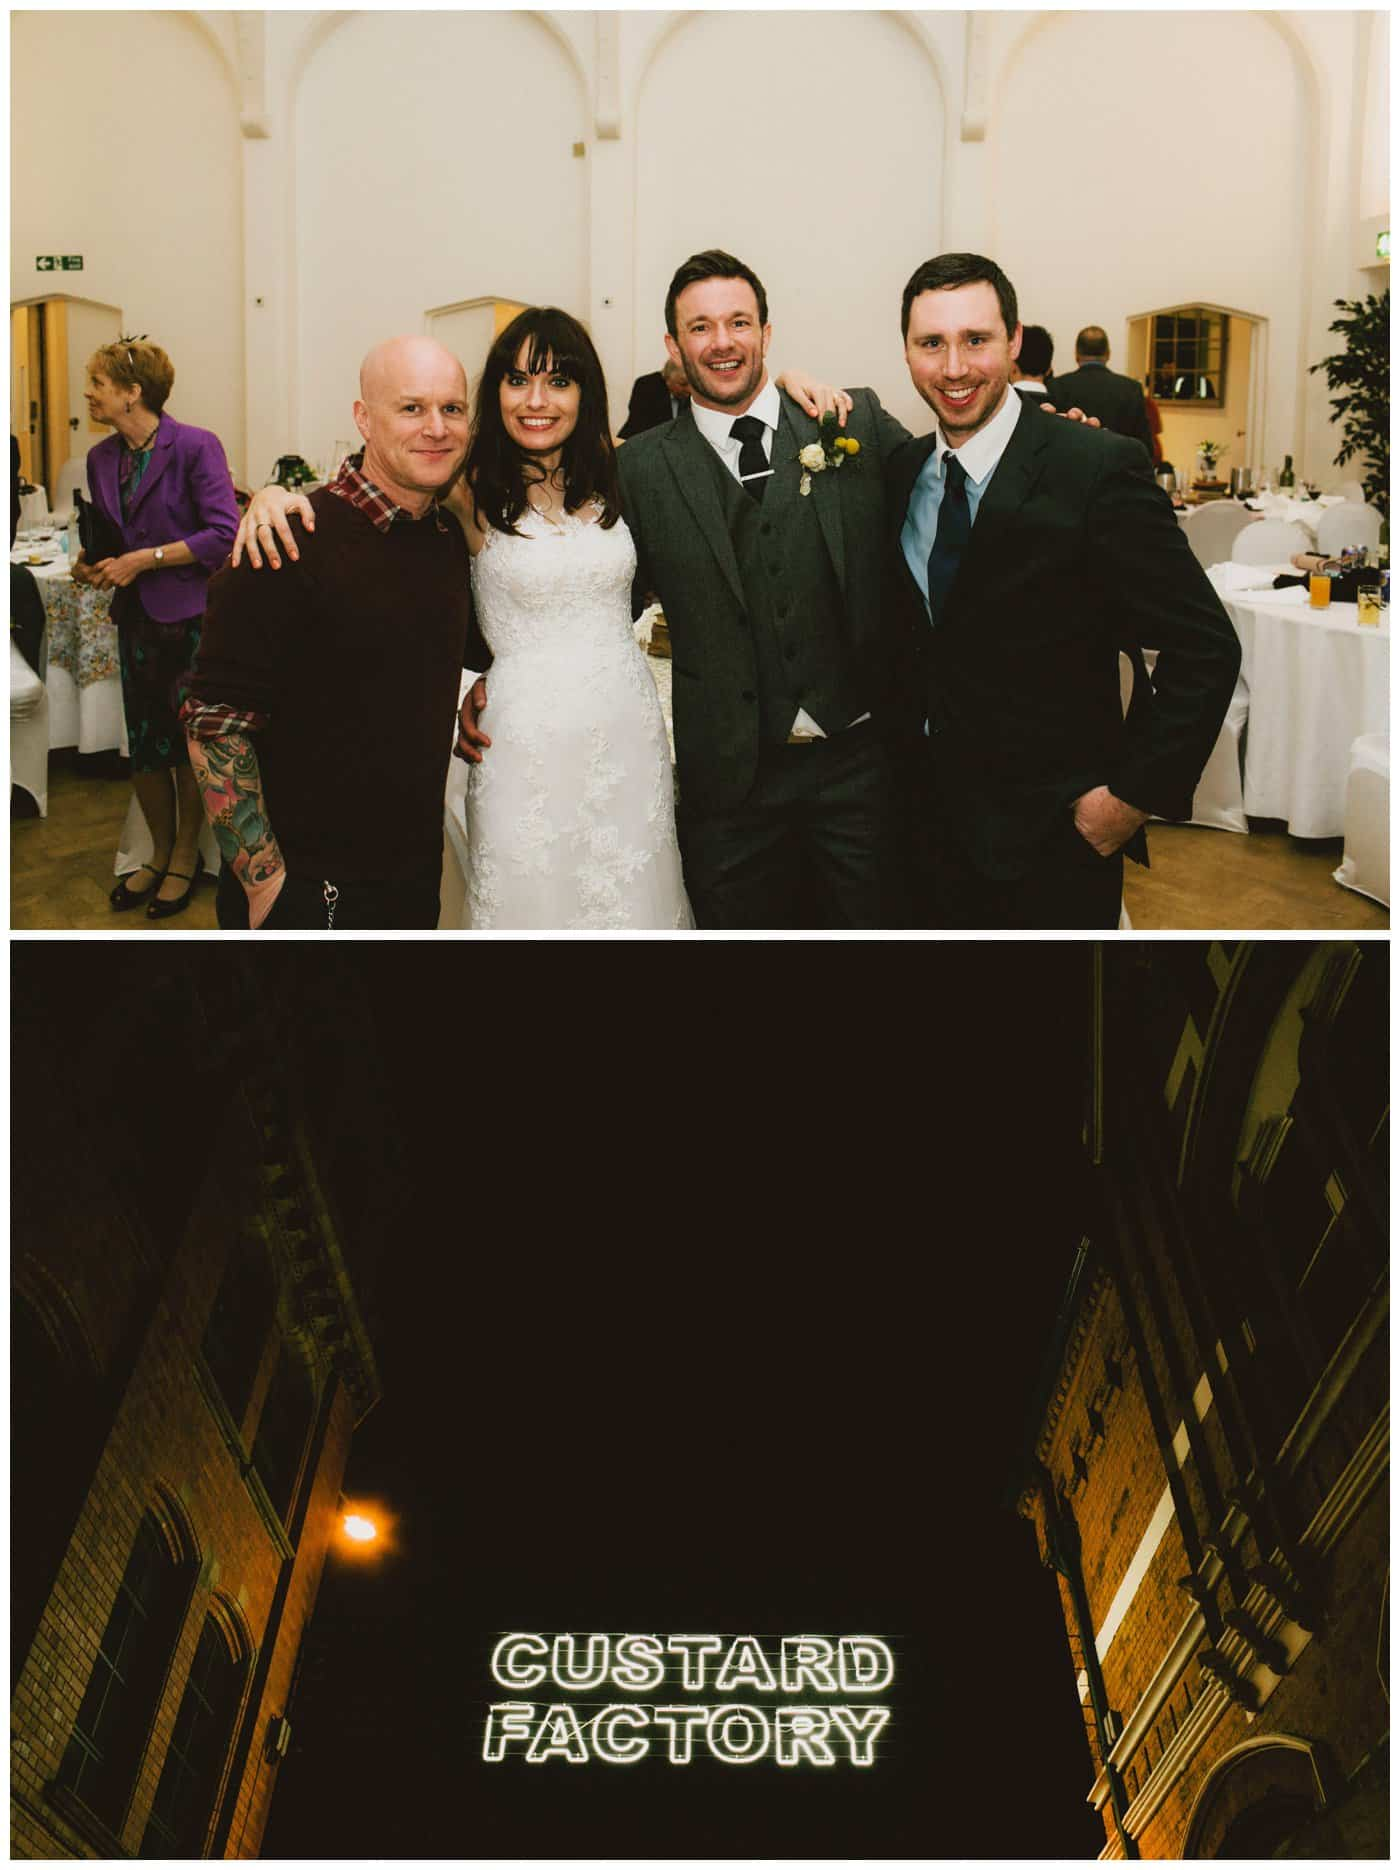 custard-factory-wedding-photographer_0055